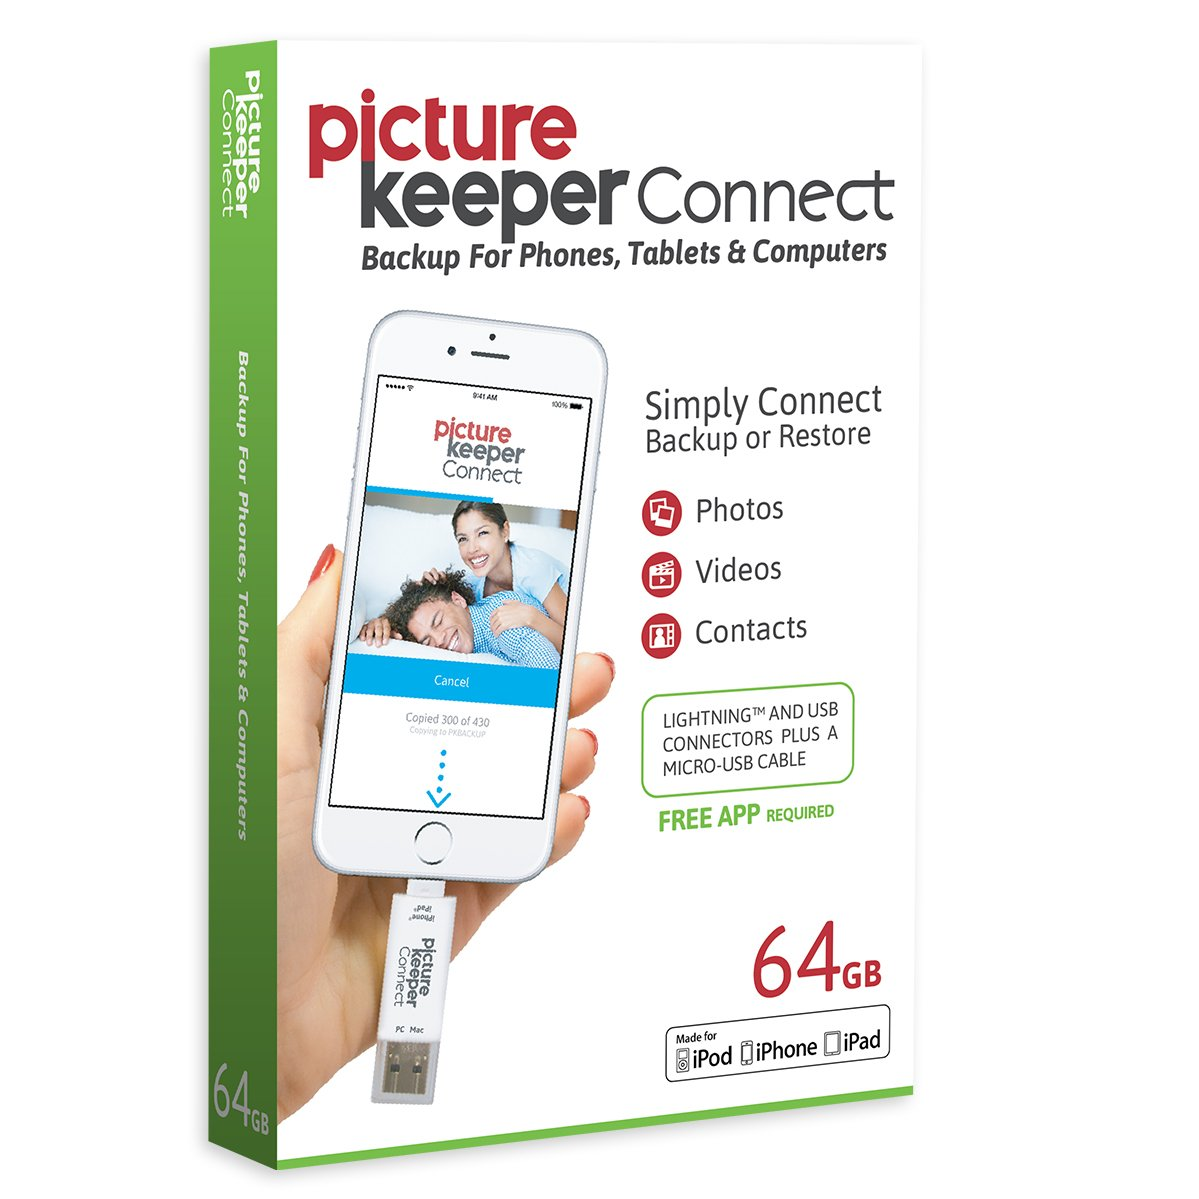 Picture Keeper CONNECT 64GB Portable Flash USB Backup and Storage Device Drive for Mobile Phones Tablets and Computers by Picture Keeper